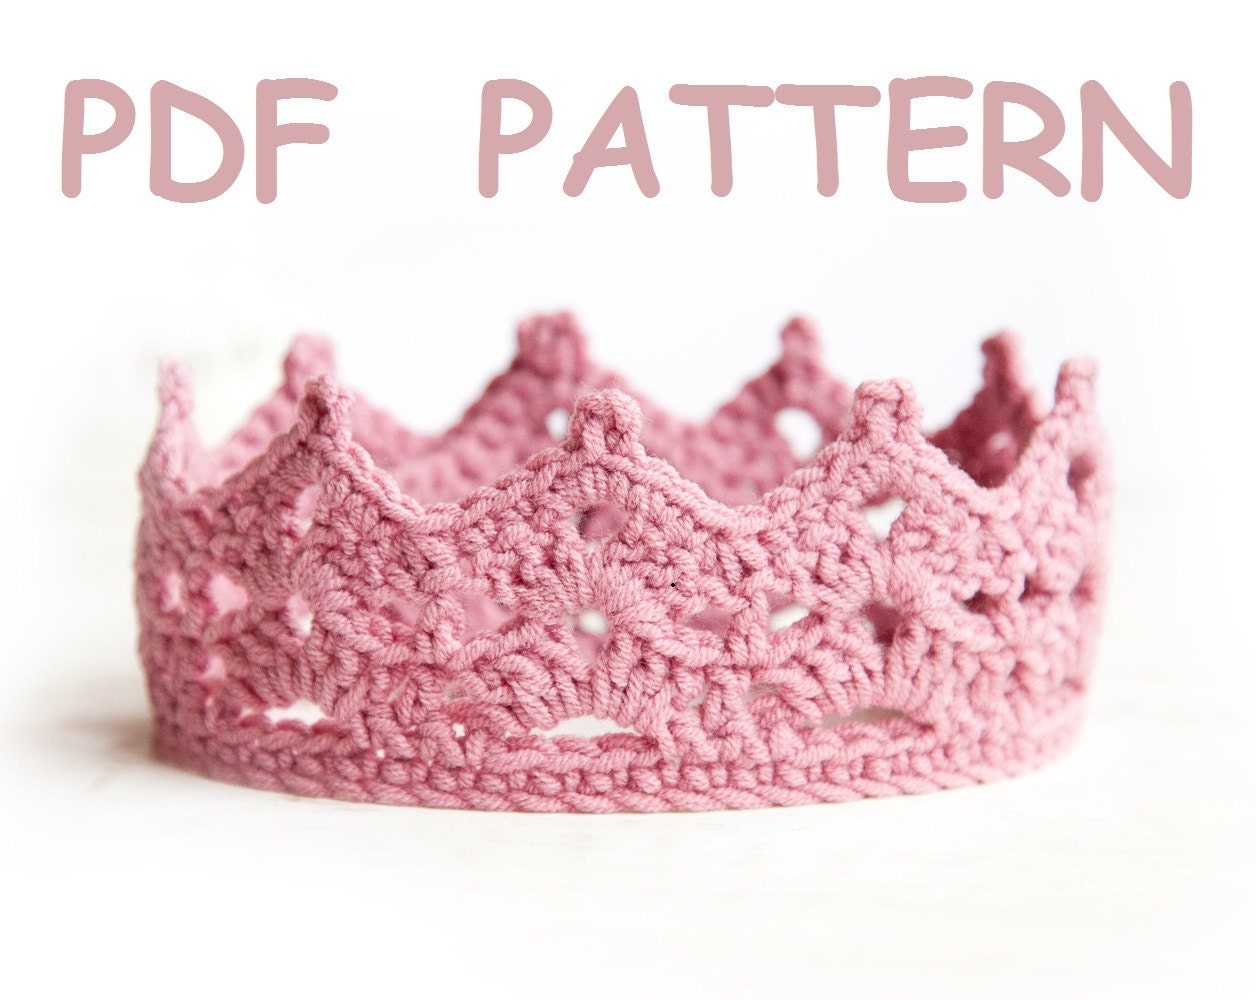 Crochet Baby Girl Clothes Patterns : Crochet Baby Crown Pattern tiara Easy level crochet